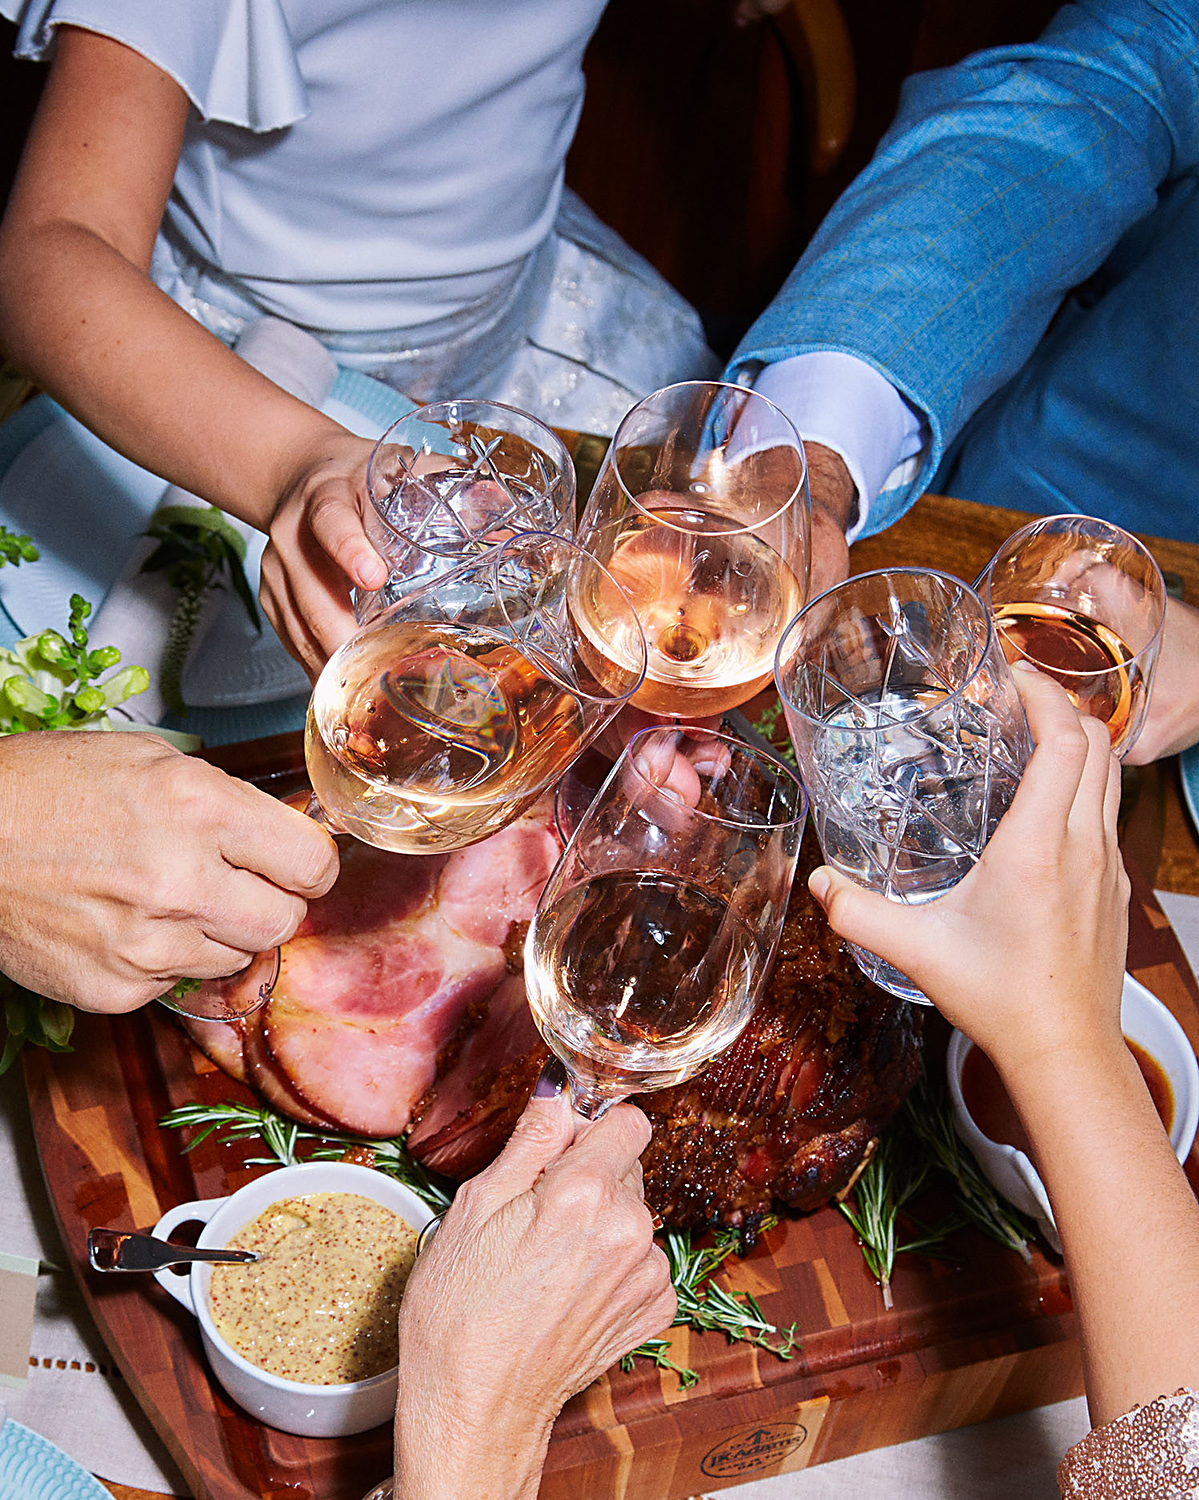 Kids and adults toasting with glasses